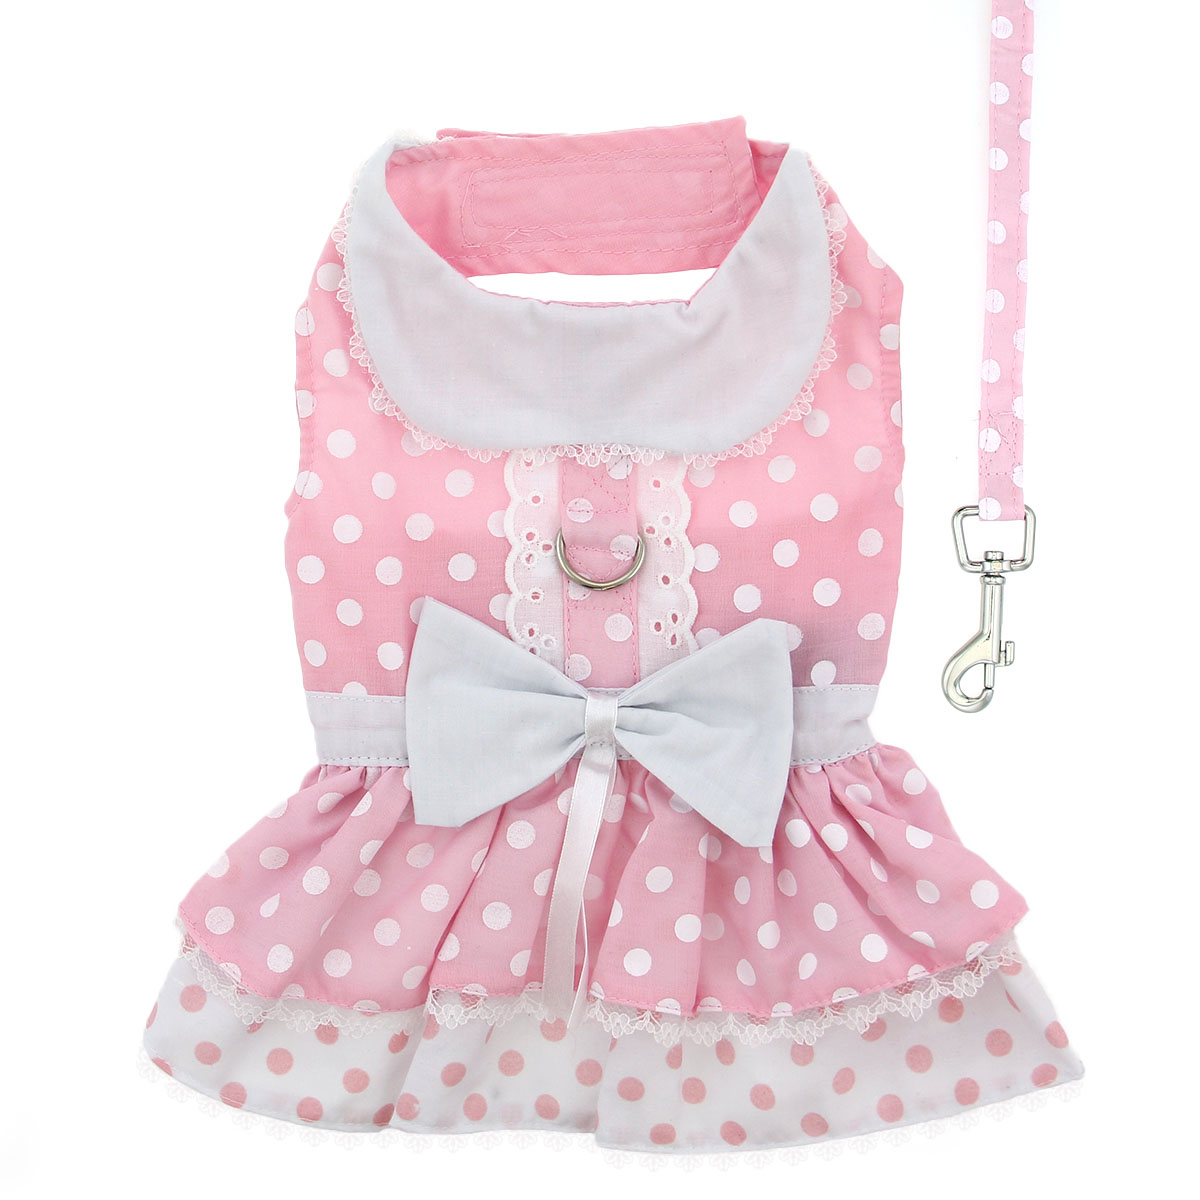 Doggie Design Dog Dress with Matching Leash, Pink Polka Dot & Lace, Large